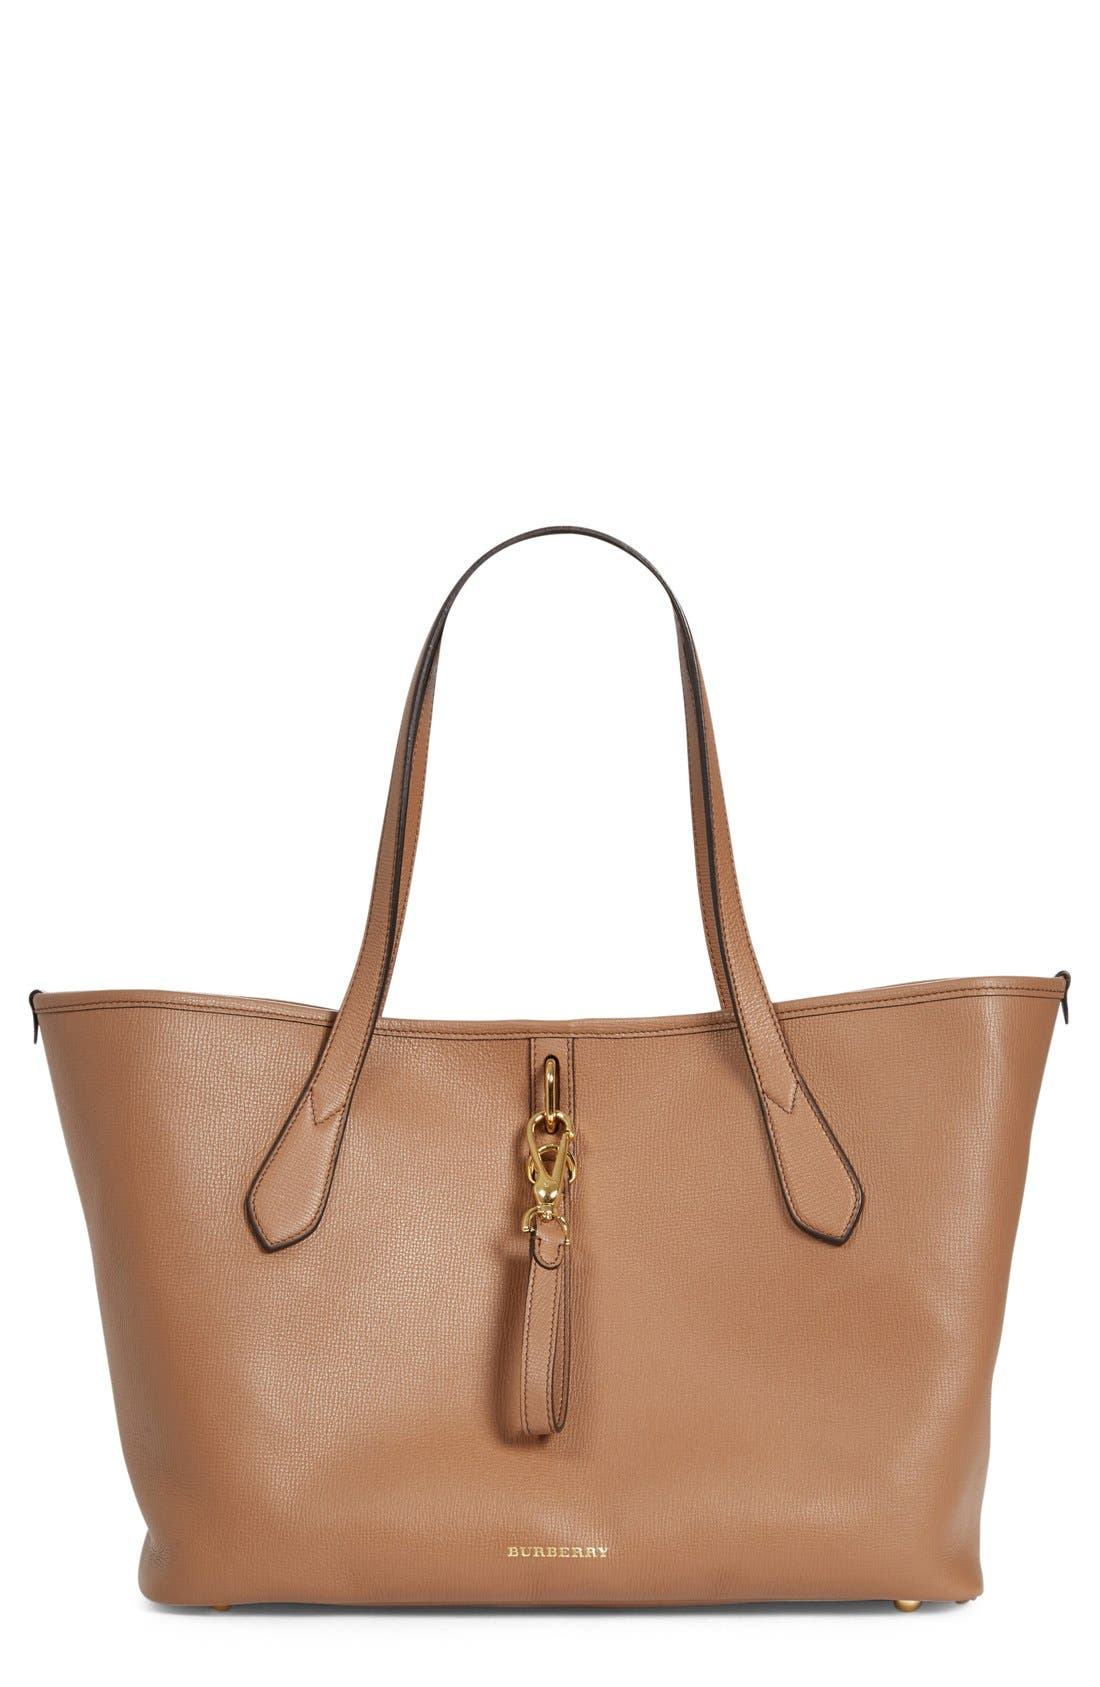 Main Image - Burberry 'Medium Honeybrook' Leather Tote